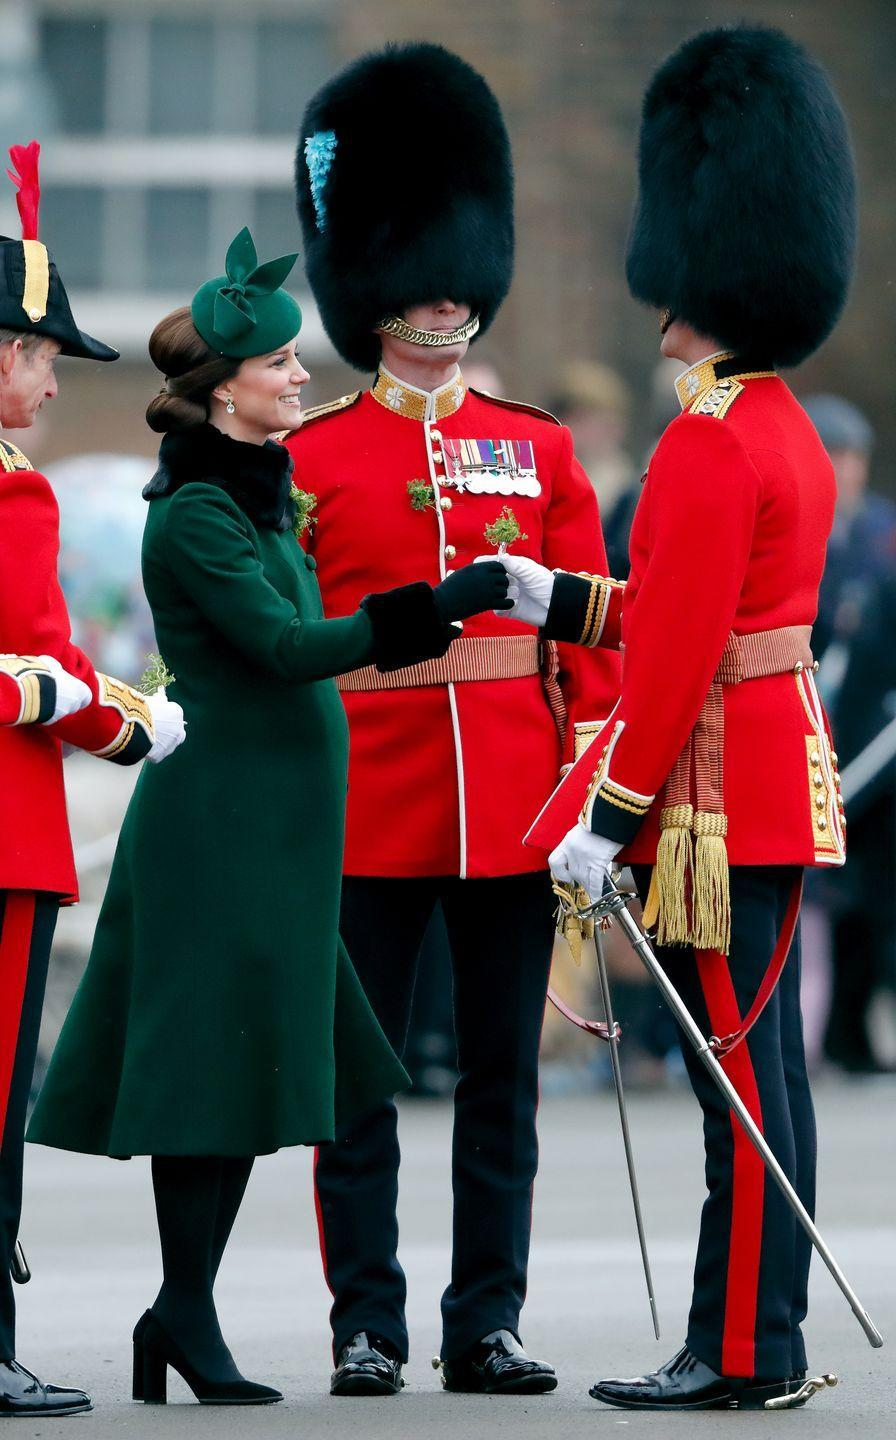 """<p>In 2016, Kate made the decision not to present the shamrocks to the 1st battalion Irish Guards on St. Patricks Day—<a href=""""https://www.vox.com/2015/3/17/8227727/shamrock-boer-war"""" rel=""""nofollow noopener"""" target=""""_blank"""" data-ylk=""""slk:a tradition"""" class=""""link rapid-noclick-resp"""">a tradition</a> first started by Queen Victoria to support the Irish in the Boer War. Kate was <a href=""""https://www.express.co.uk/news/royal/654056/Duchess-of-Cambridge-Kate-Middleton-work-shy-blasted-Kensignton-Palace"""" rel=""""nofollow noopener"""" target=""""_blank"""" data-ylk=""""slk:ridiculed on social media"""" class=""""link rapid-noclick-resp"""">ridiculed on social media</a> for staying home with her children while Prince William attended.</p><p>Kensington Palace released the following statement: """"While the Duchess has accompanied the Duke every year since his appointment in 2012, and will do so again in future, this year she sadly could not make it because she is prioritising time with her children before next month's tour of India and Bhutan.""""</p><p>This February, Kate chose to attend and present the shamrocks (pictured).</p>"""